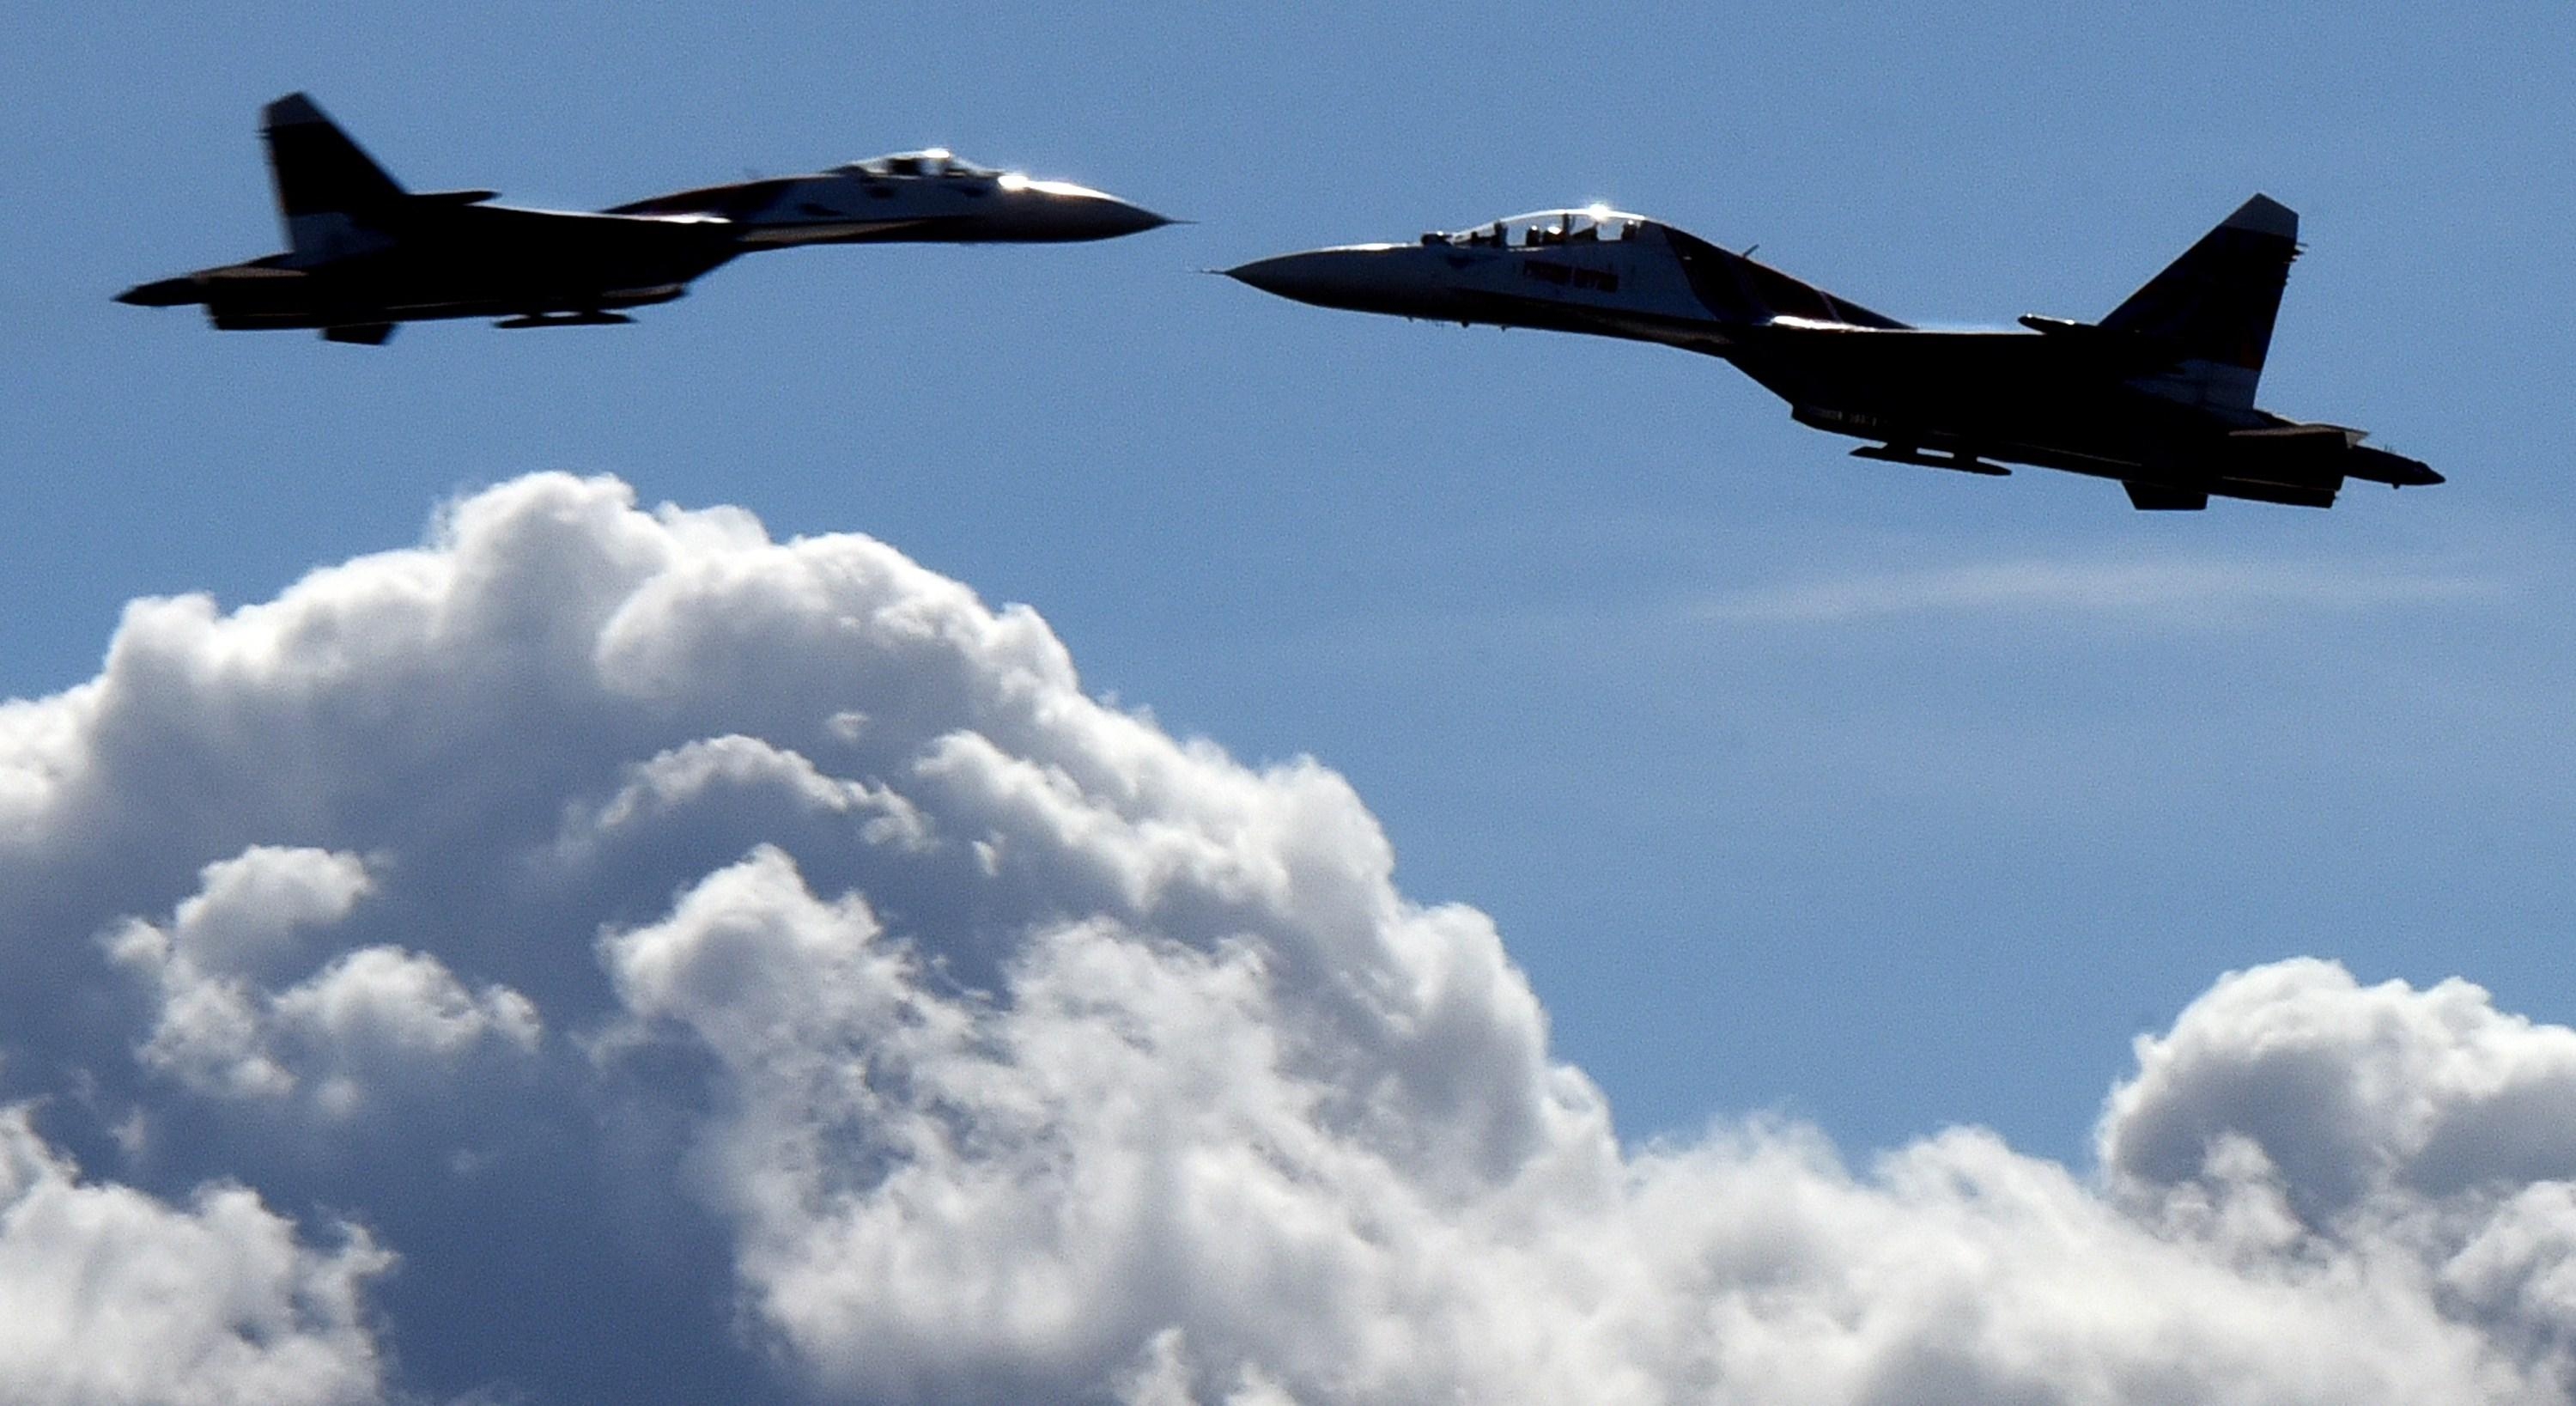 Dramatic moment a Russian jet 'unsafely' intercepts United States naval plane